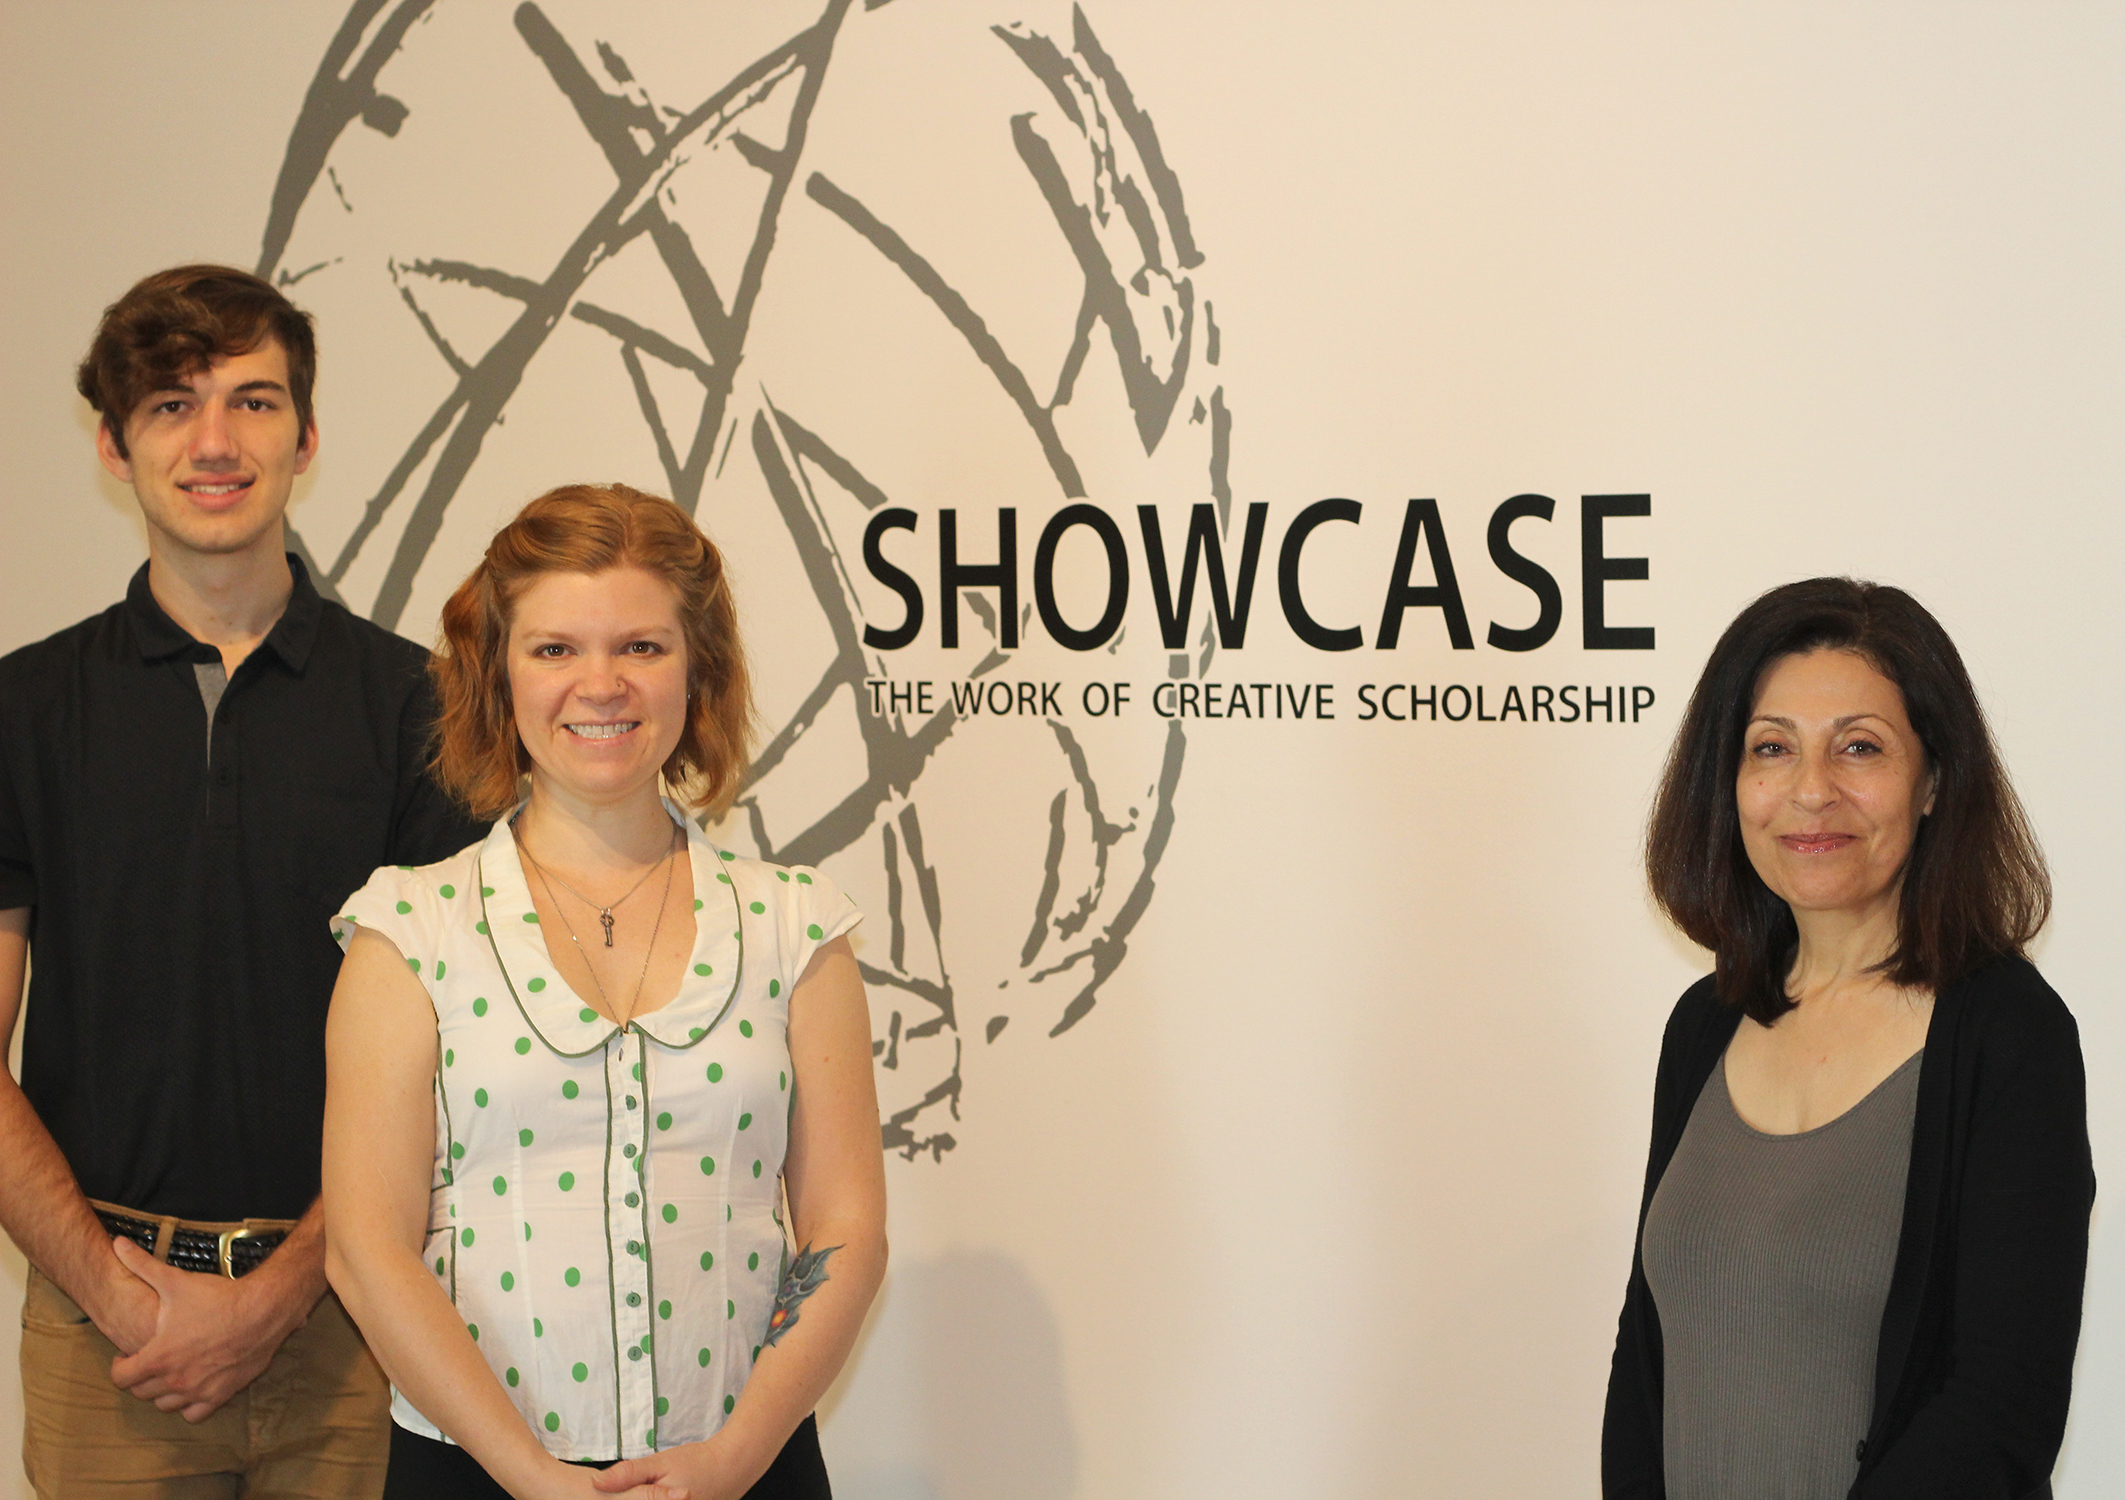 Artists featured in SHOWCASE event: Jack Stoffel, theatre student; Annie Campbell, art professor; and Fereshteh Rostampour, event organizer and professor of lighting and set design.